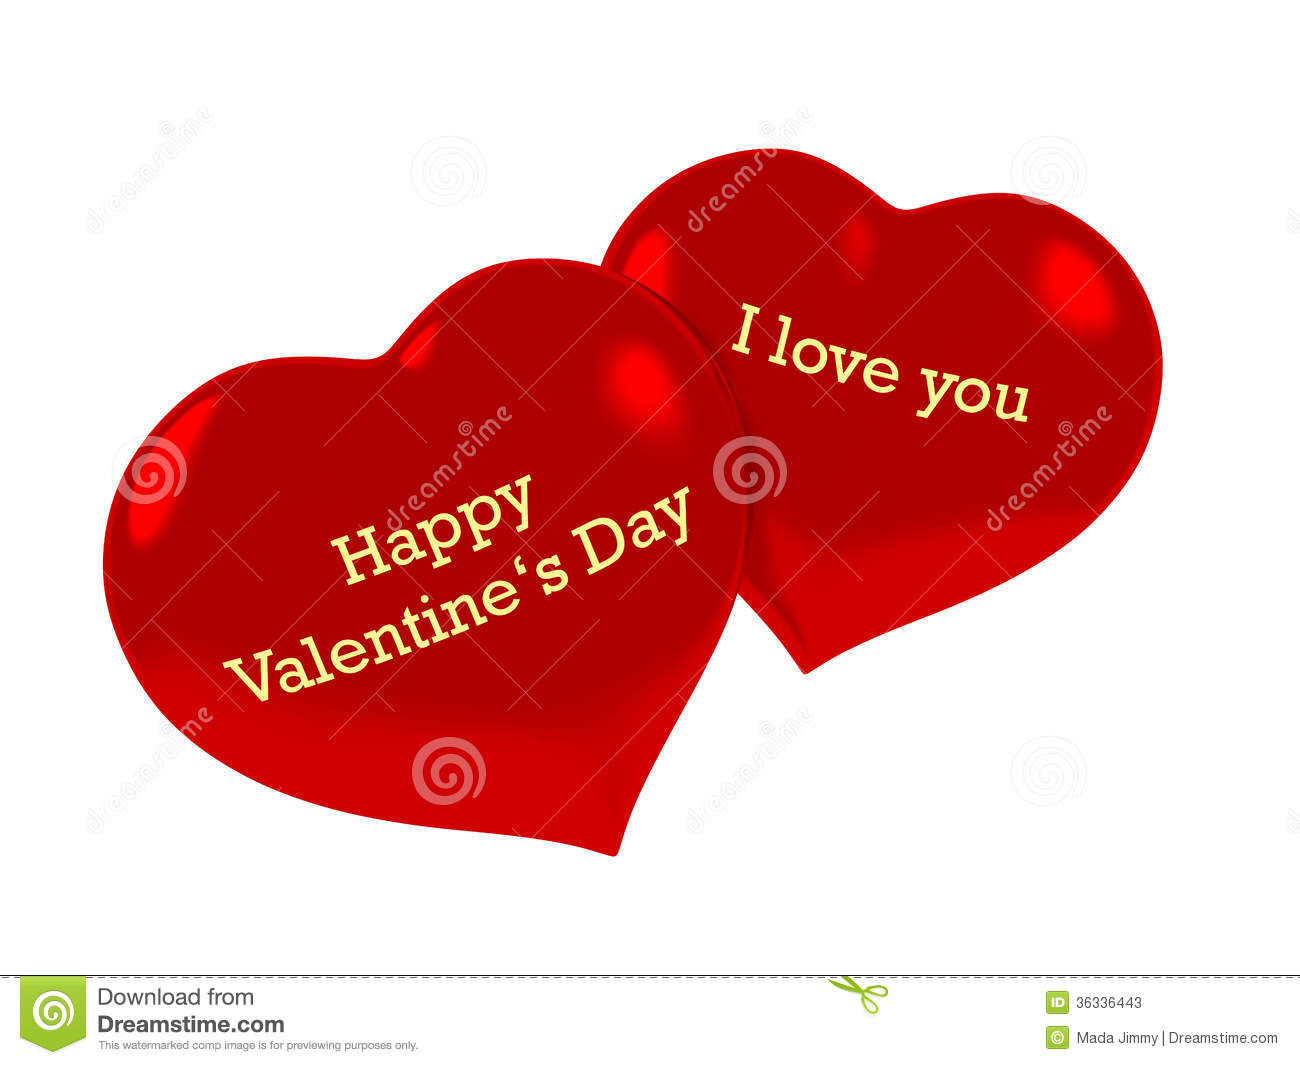 happy valentine's day i love you text on hearts